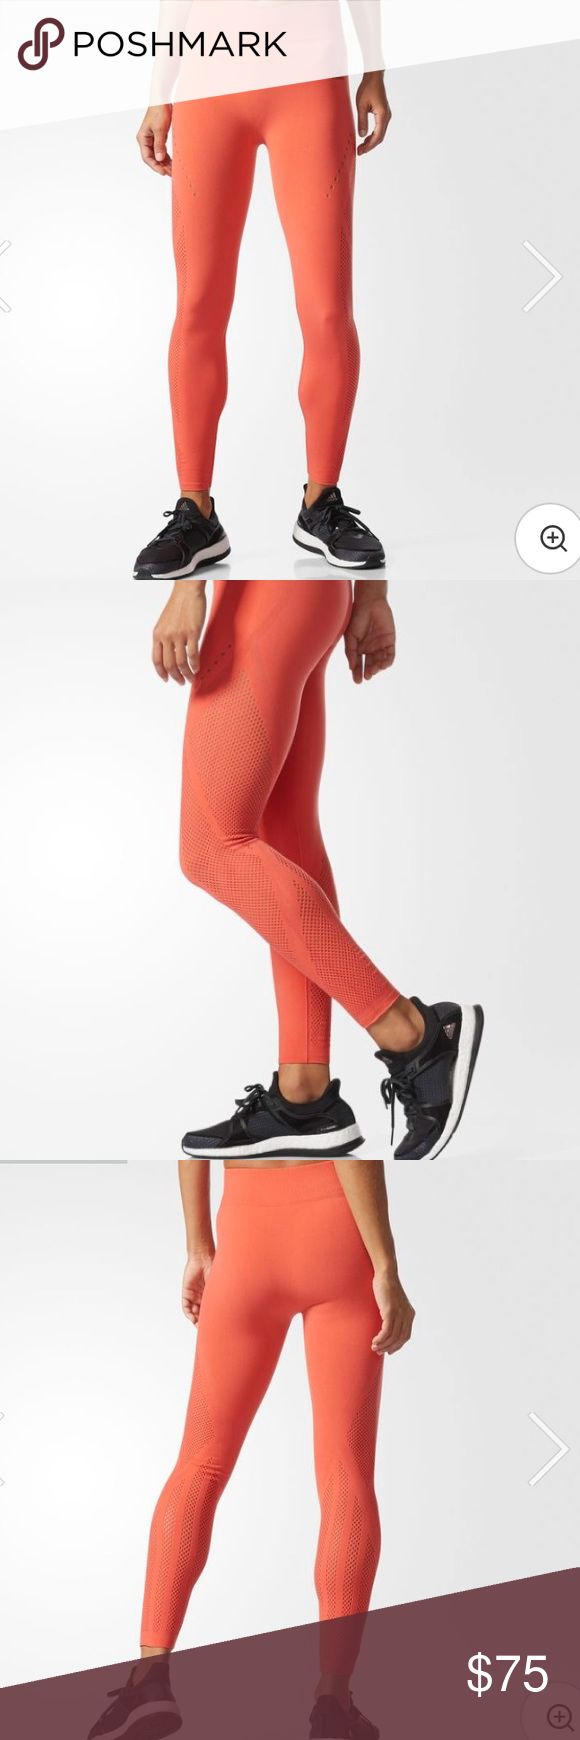 "Adidas Tight Leggings New with tag.  Tights as flexible as your practice. These women's leggings are made of stretchy fabric cut for a slightly shorter length. They have a smooth, seamless construction that reduces chafing, and climacool® for airy-cool comfort on the mat.  Ventilated climacool® keeps you cool and dry Ribbed waist Seamless warp knit construction Medium upper leg compression for shaping  23.5"" inseam (size Med) Fitted fit; Seven-eighth length 76% nylon / 24% elastane seamless…"